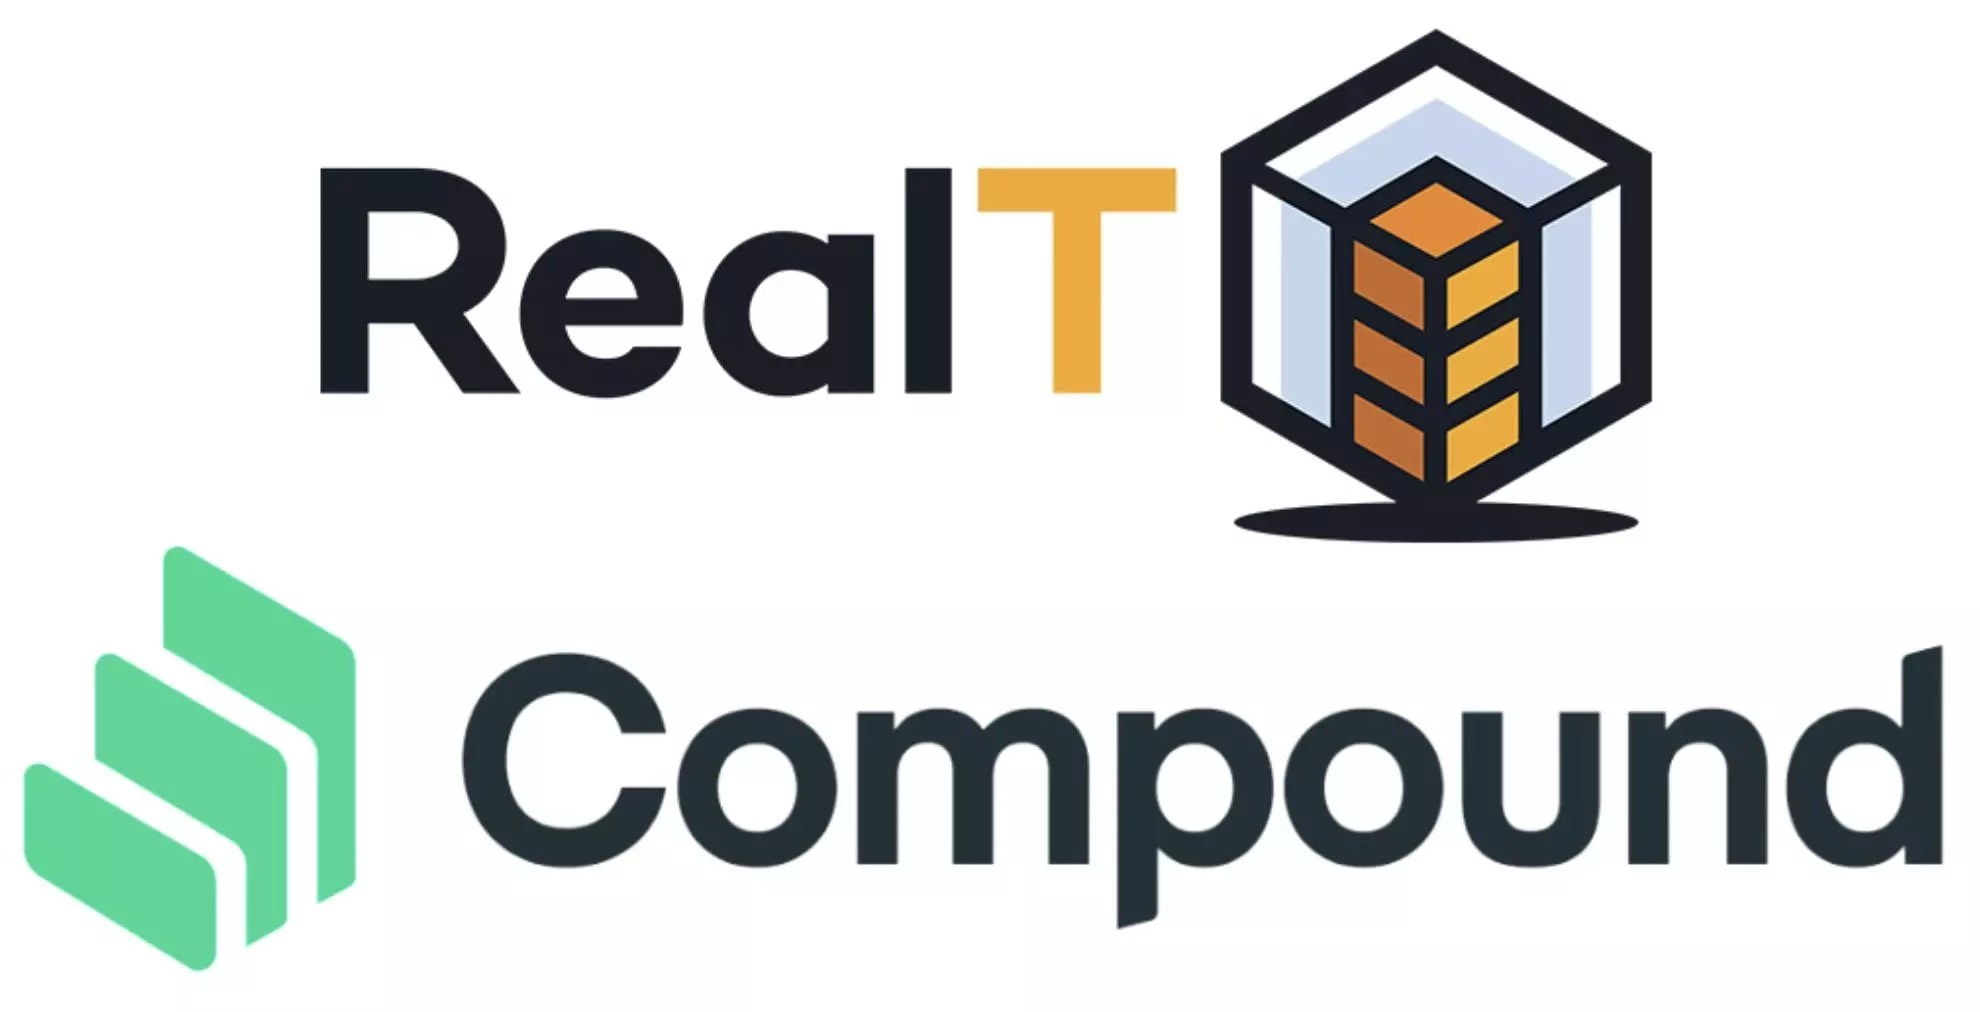 buy tokenized real estate on Realt